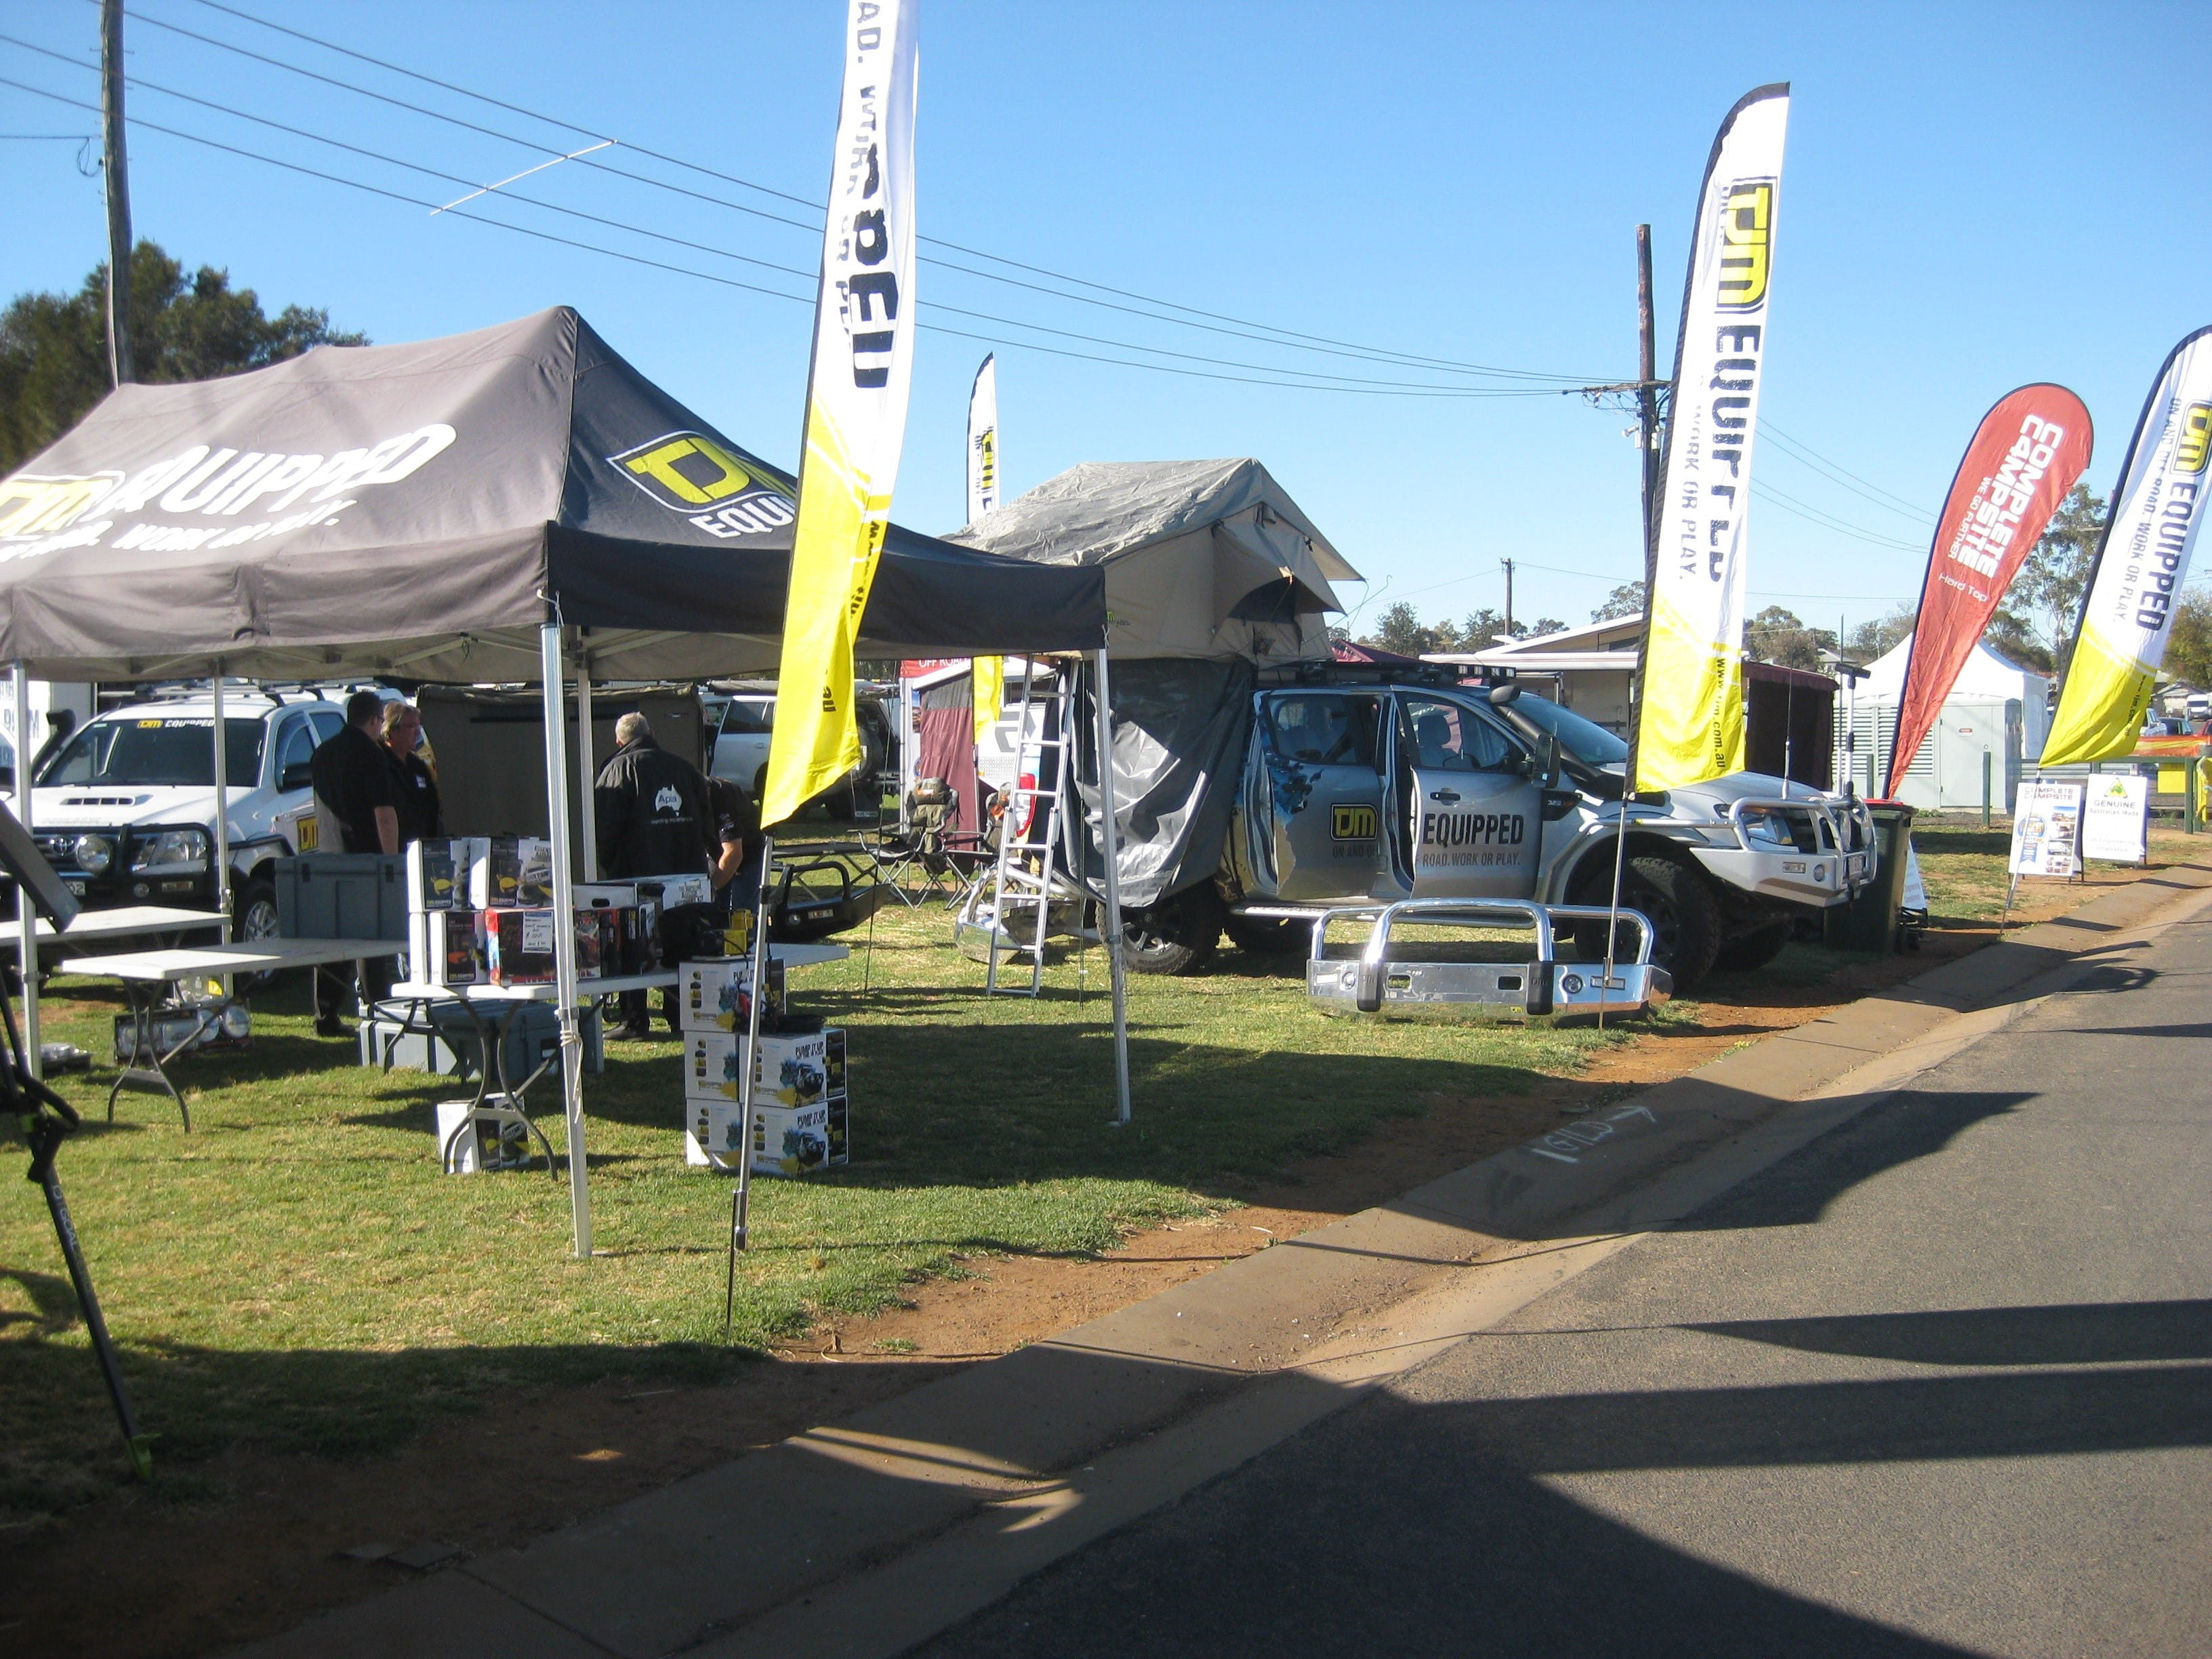 Orana Caravan Camping 4WD Fish and Boat Show - Townsville Tourism